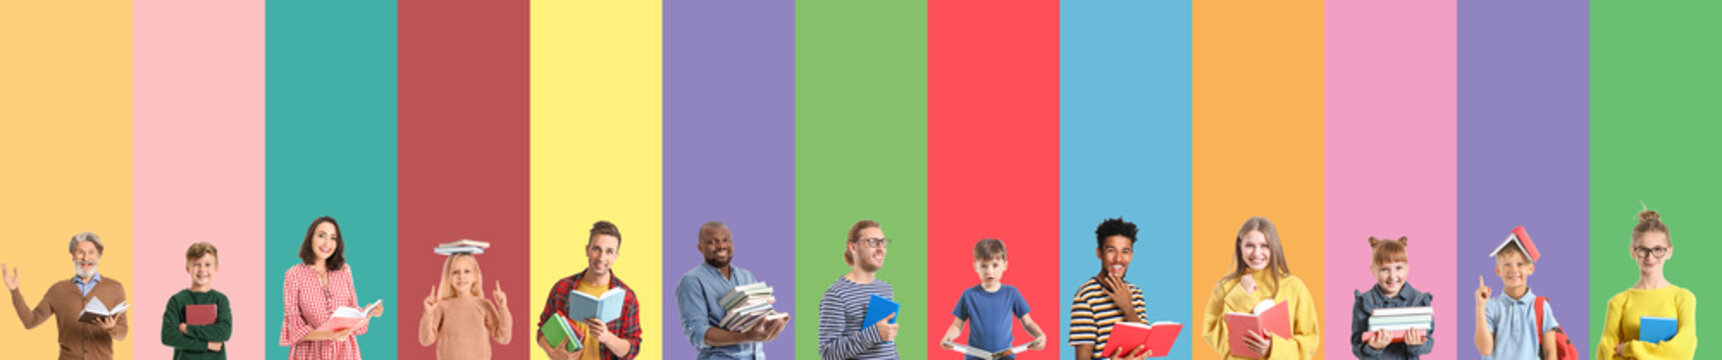 Different people with books on colorful background